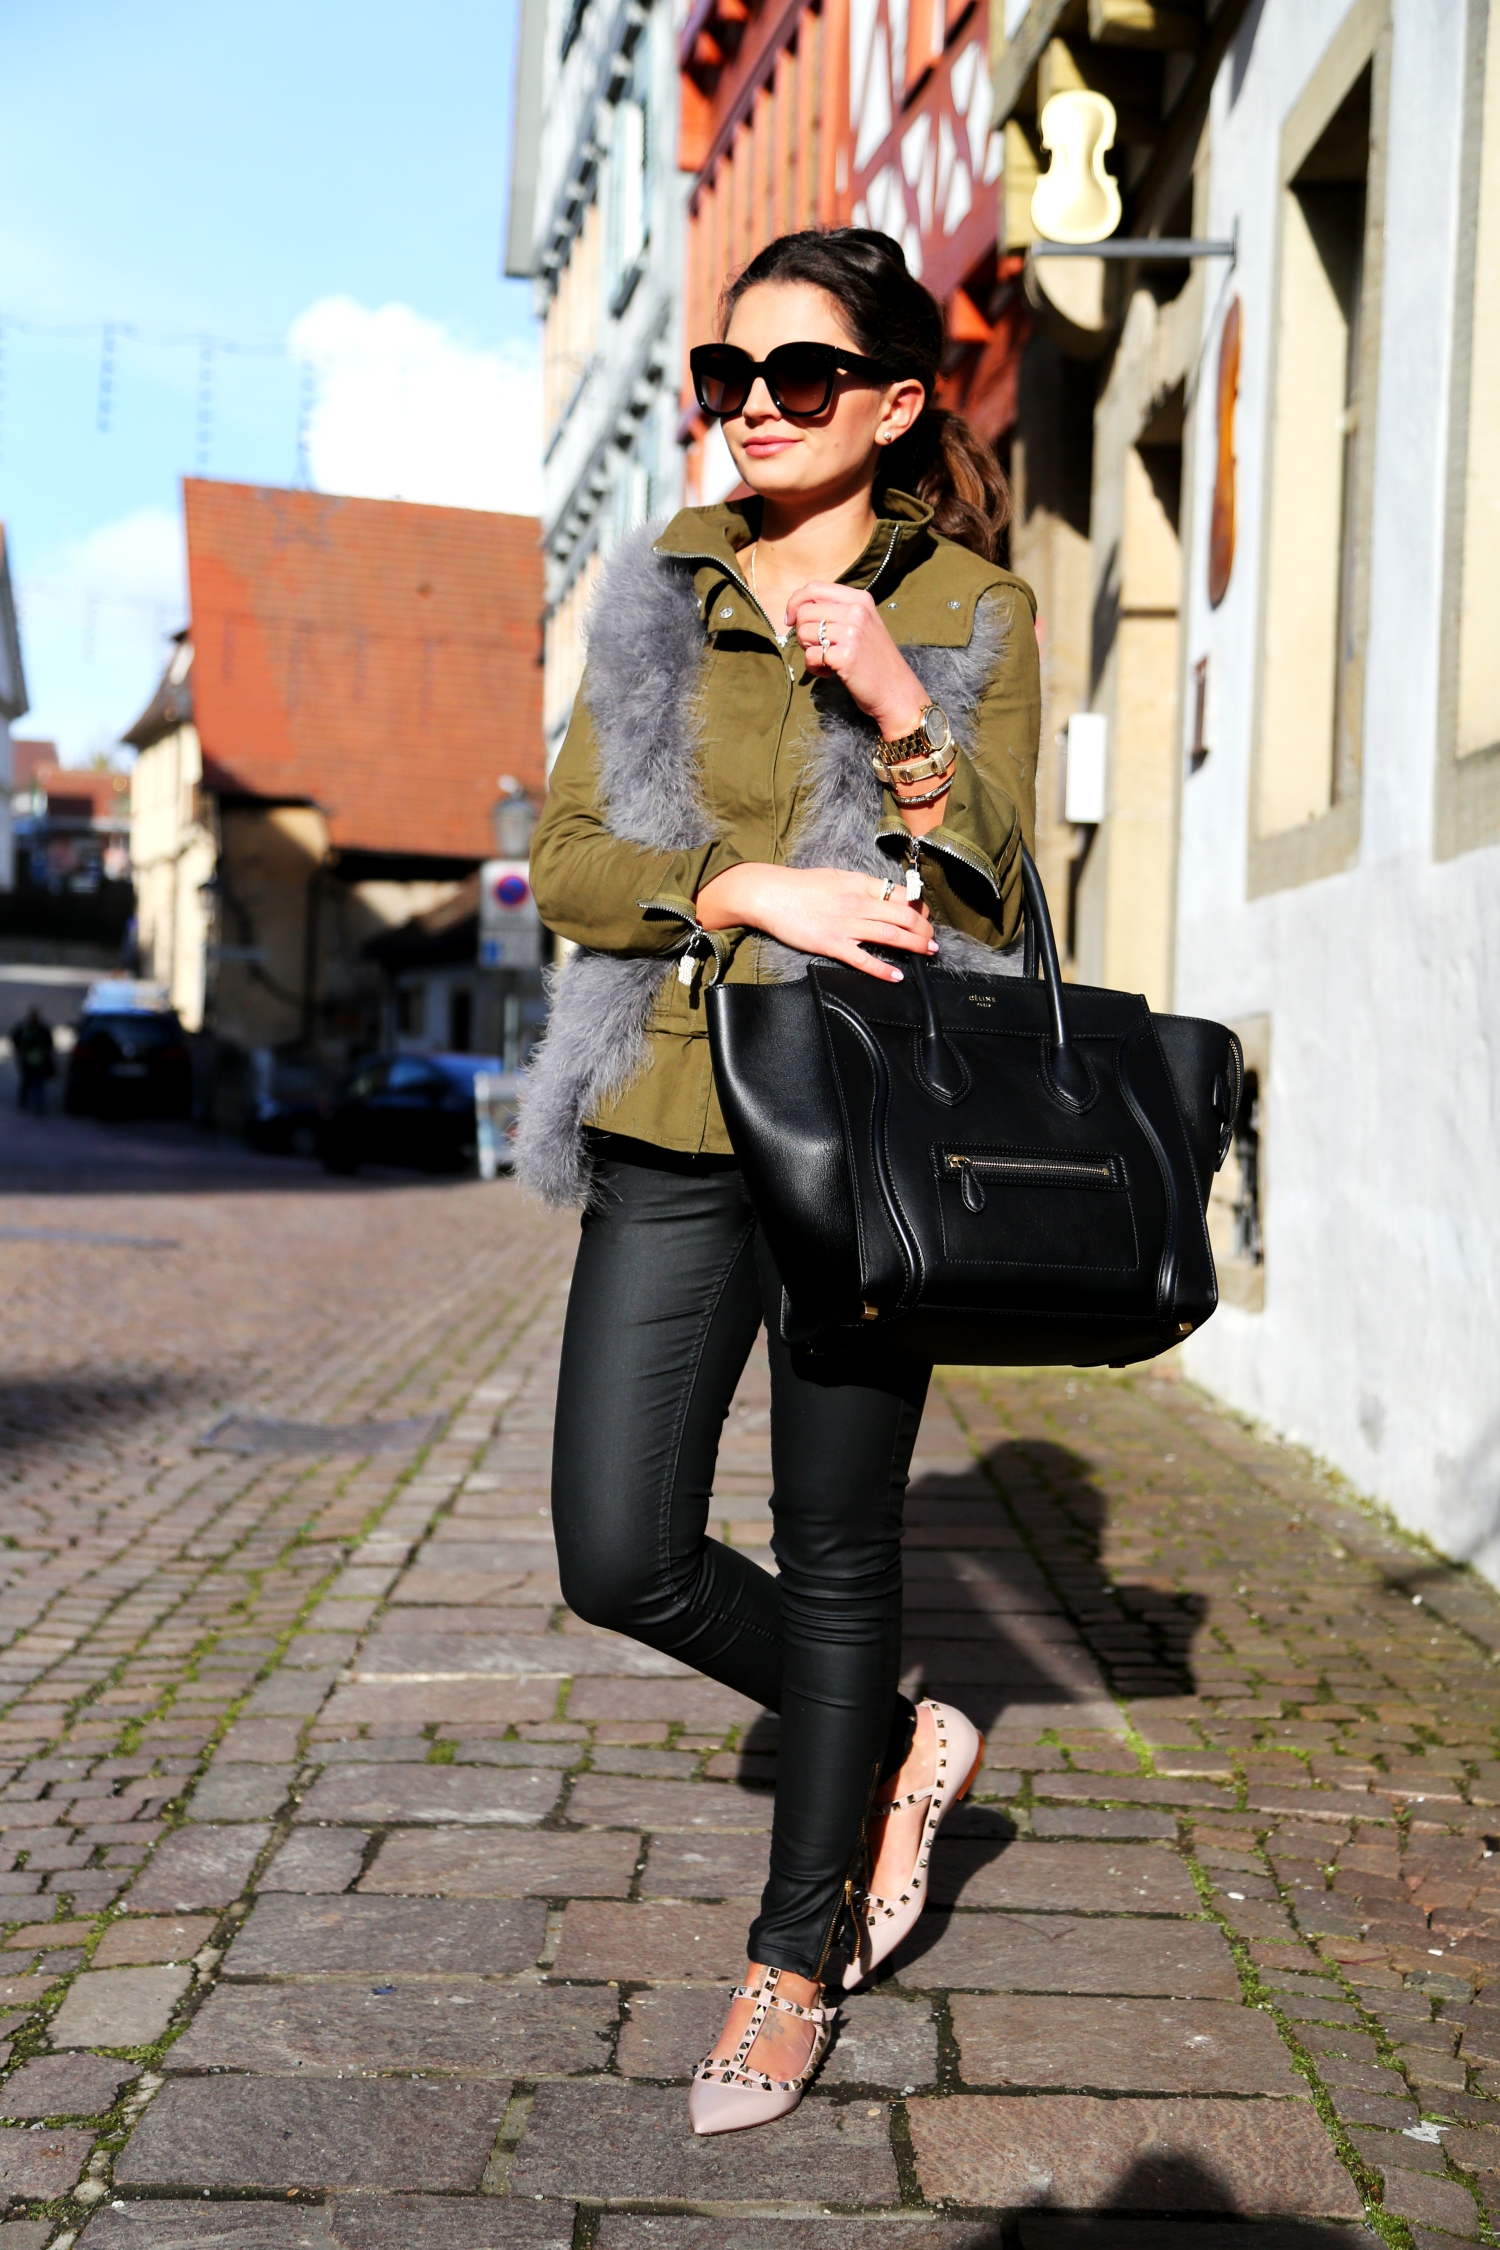 Casual Shopping Outfit Fashionhippieloves